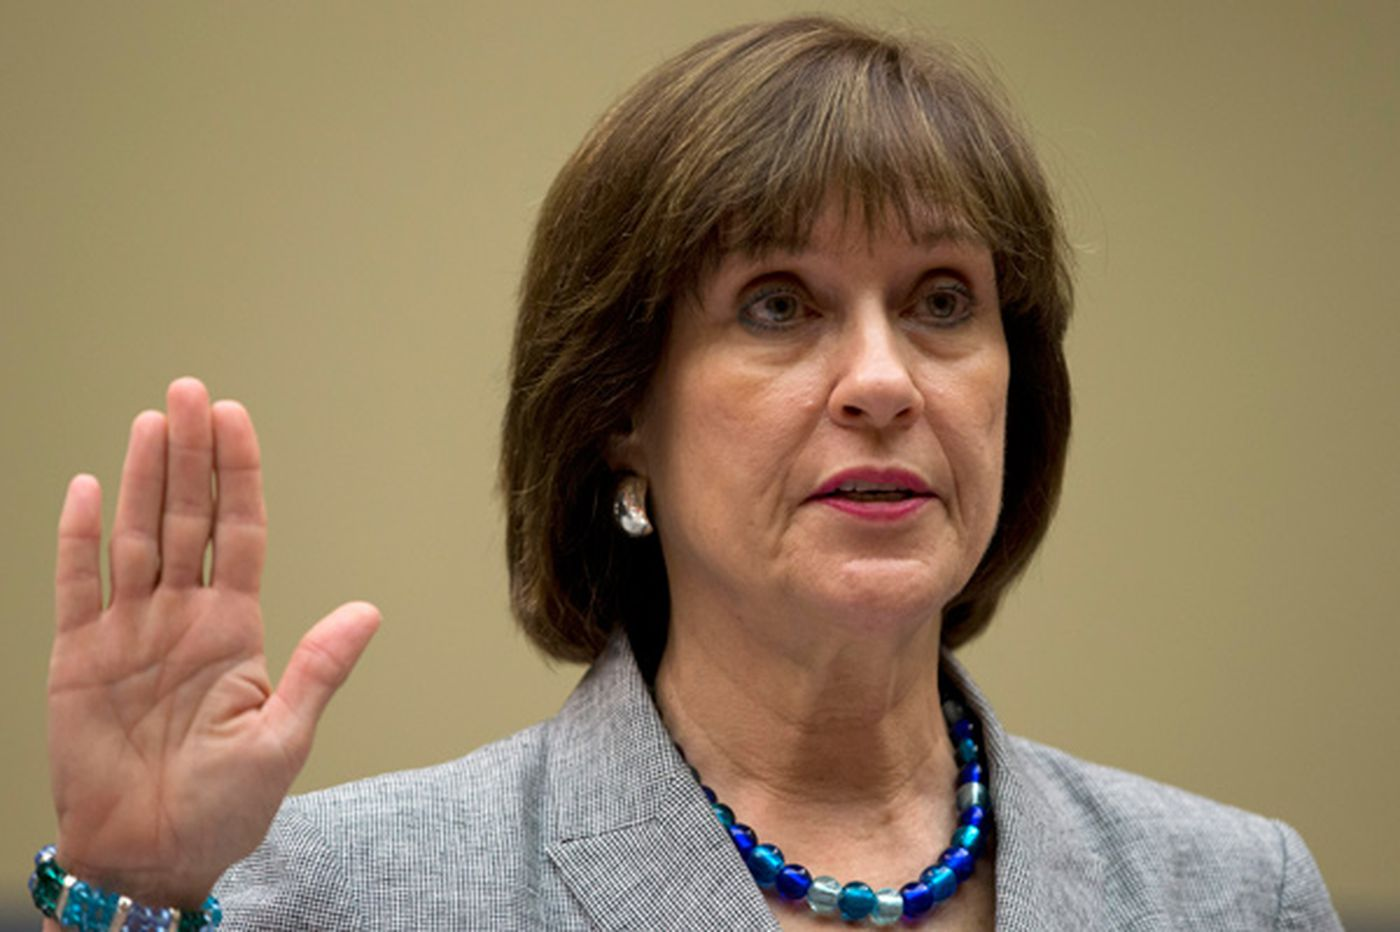 An IRS official, the Fifth Amendment and a Congress controversy